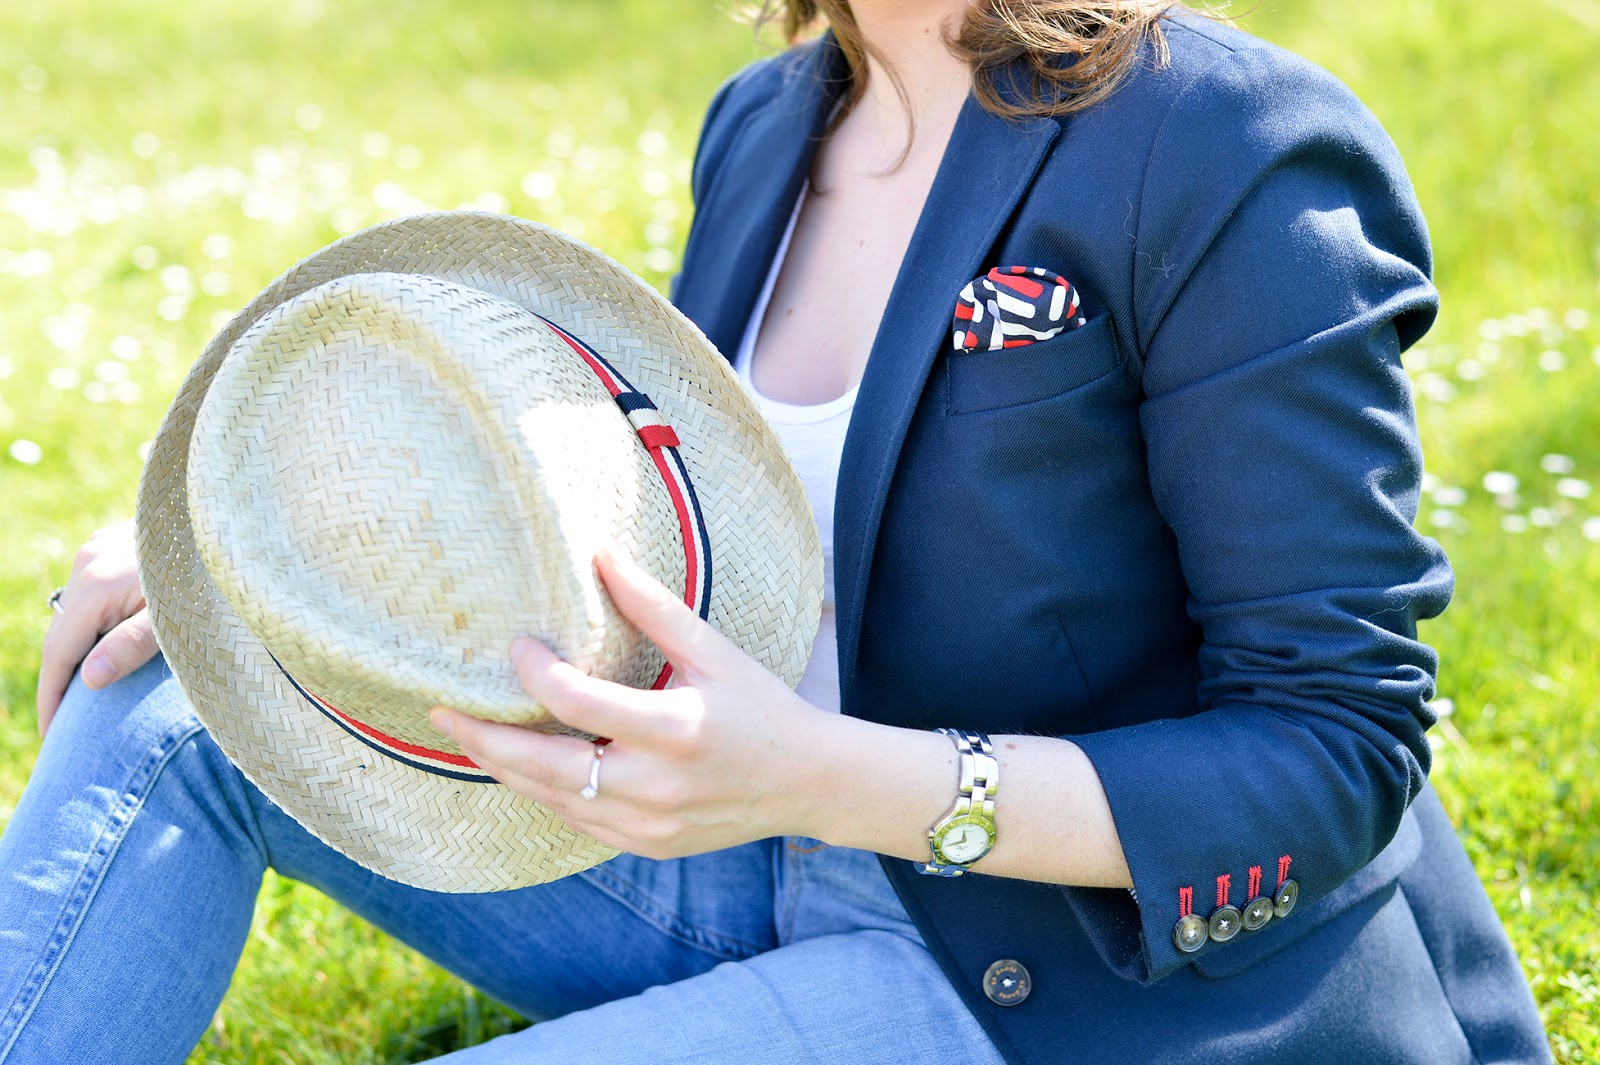 straw hat navy blazer oxford shoes fashion blogger outfit